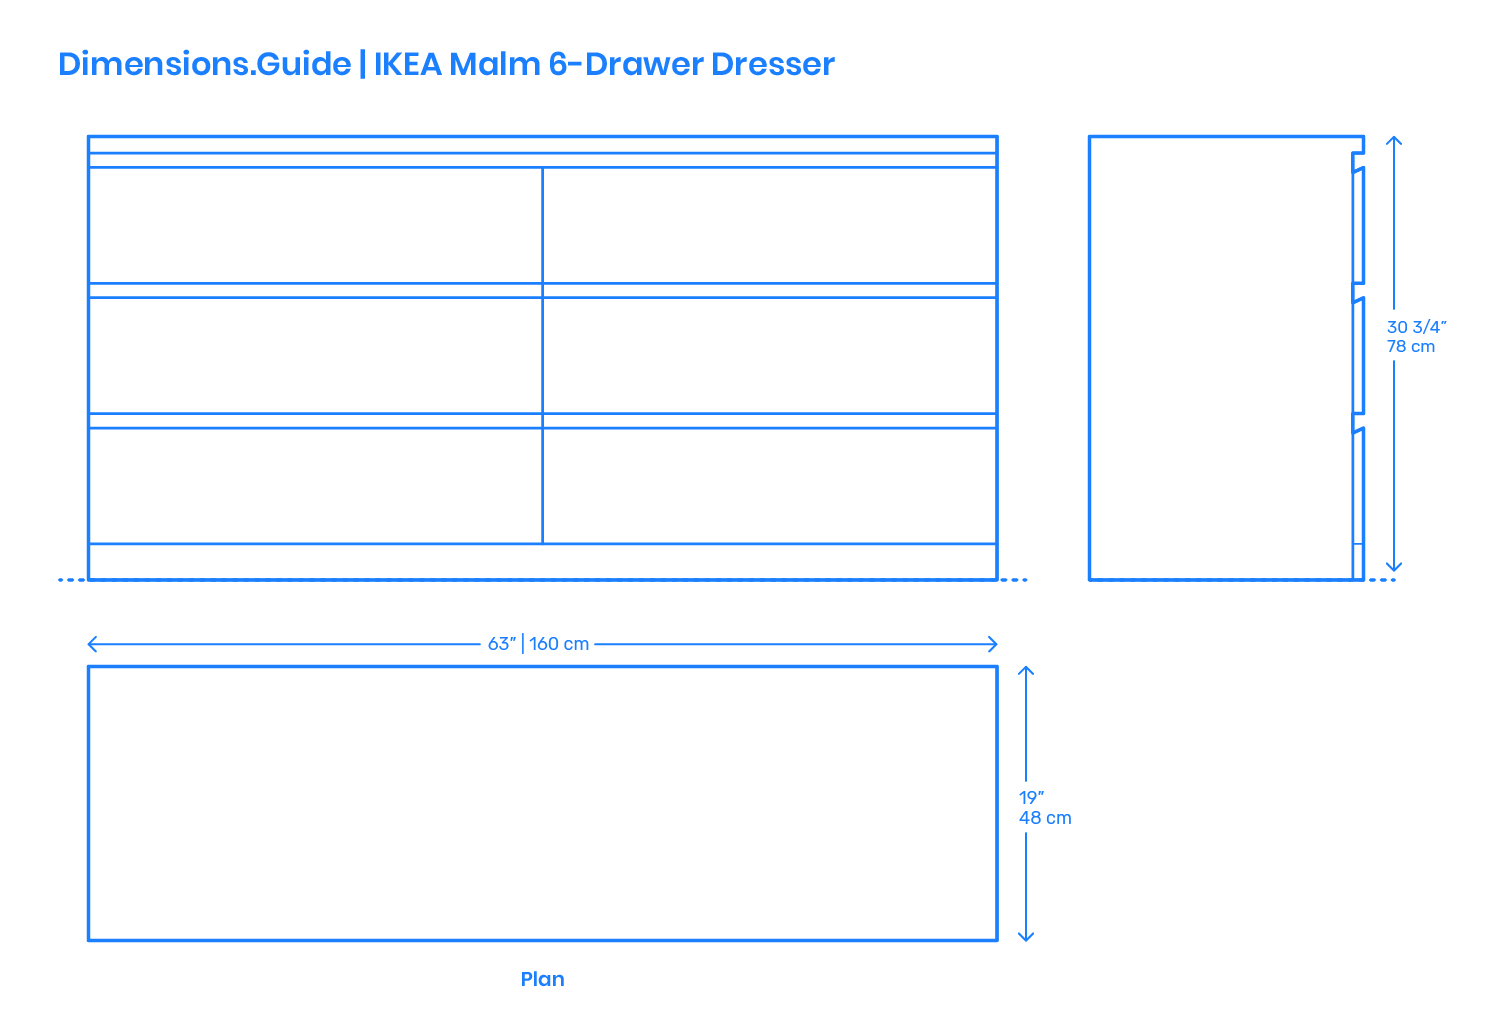 Billy Ikea Dimensions Ikea Malm 6 Drawer Dresser Dimensions Drawings Dimensions Guide